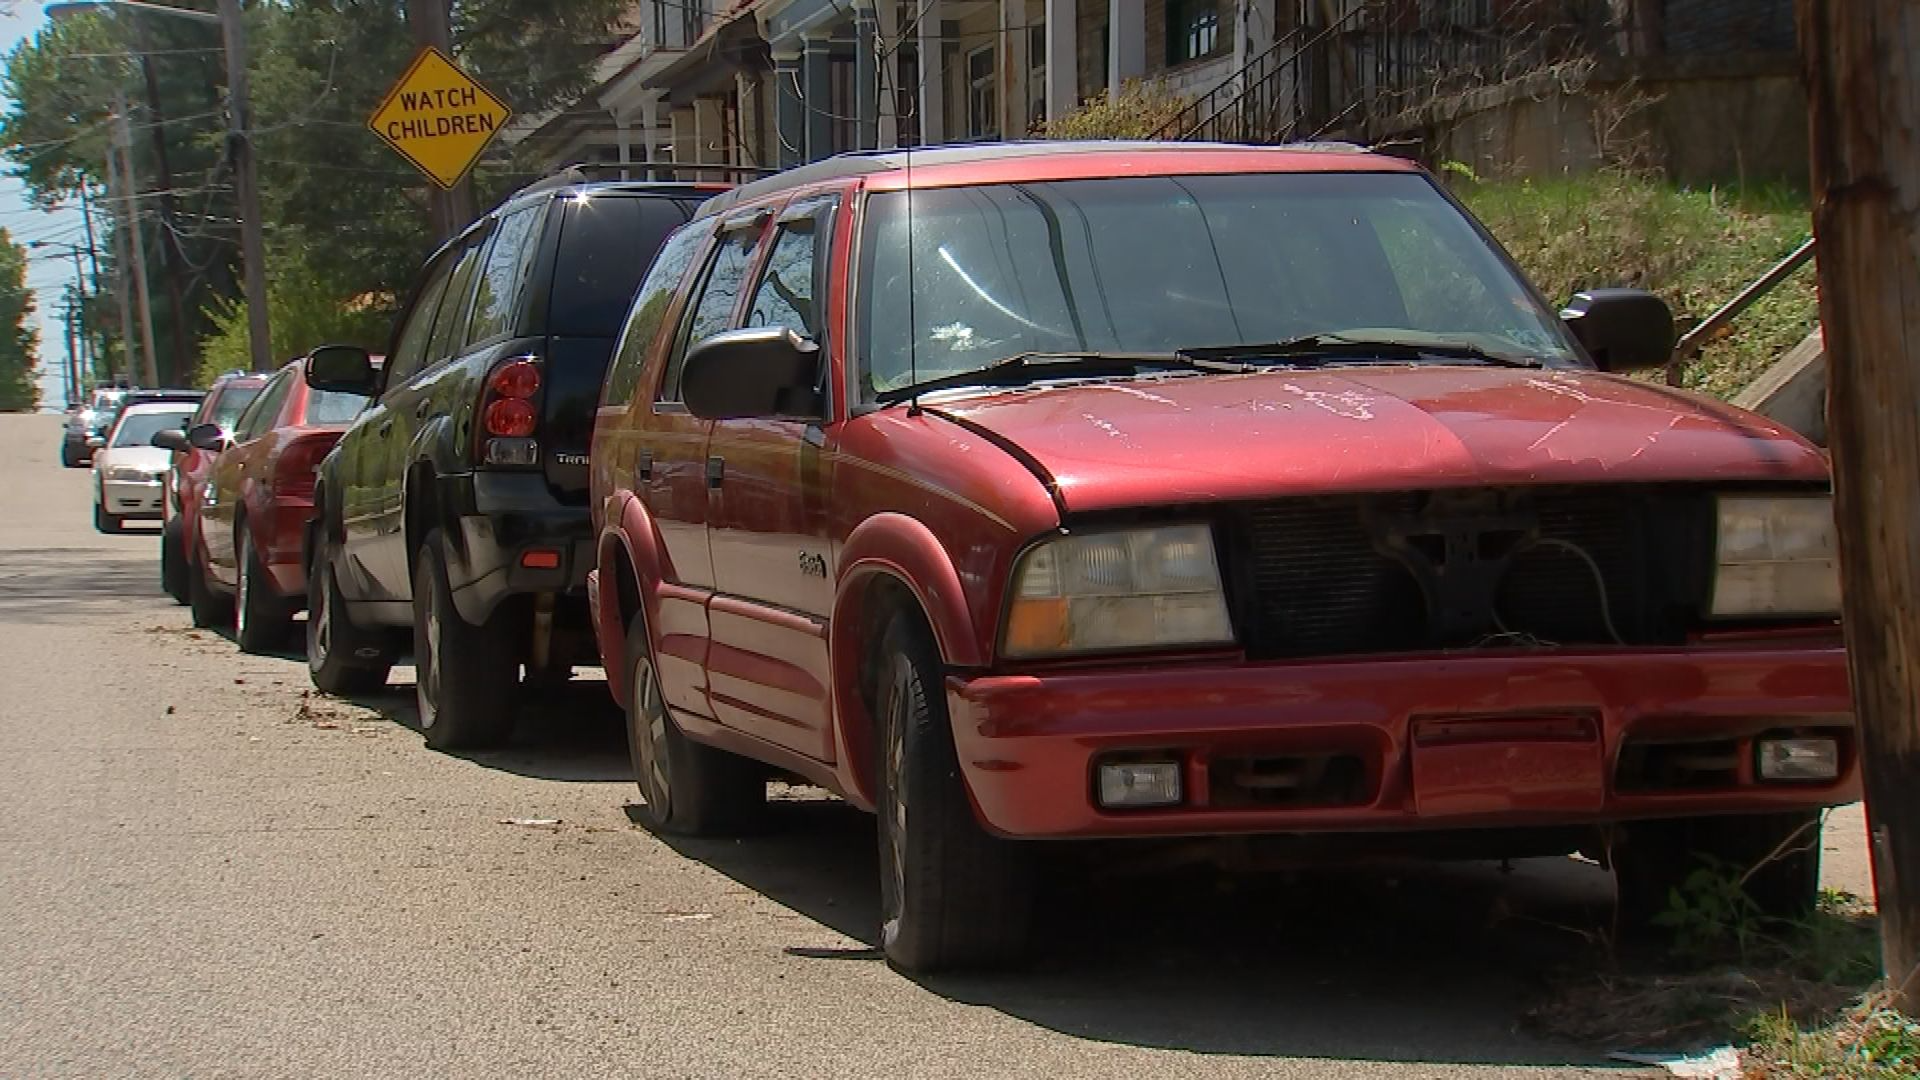 Police are removing abandoned vehicles in Pittsburgh neighborhoods